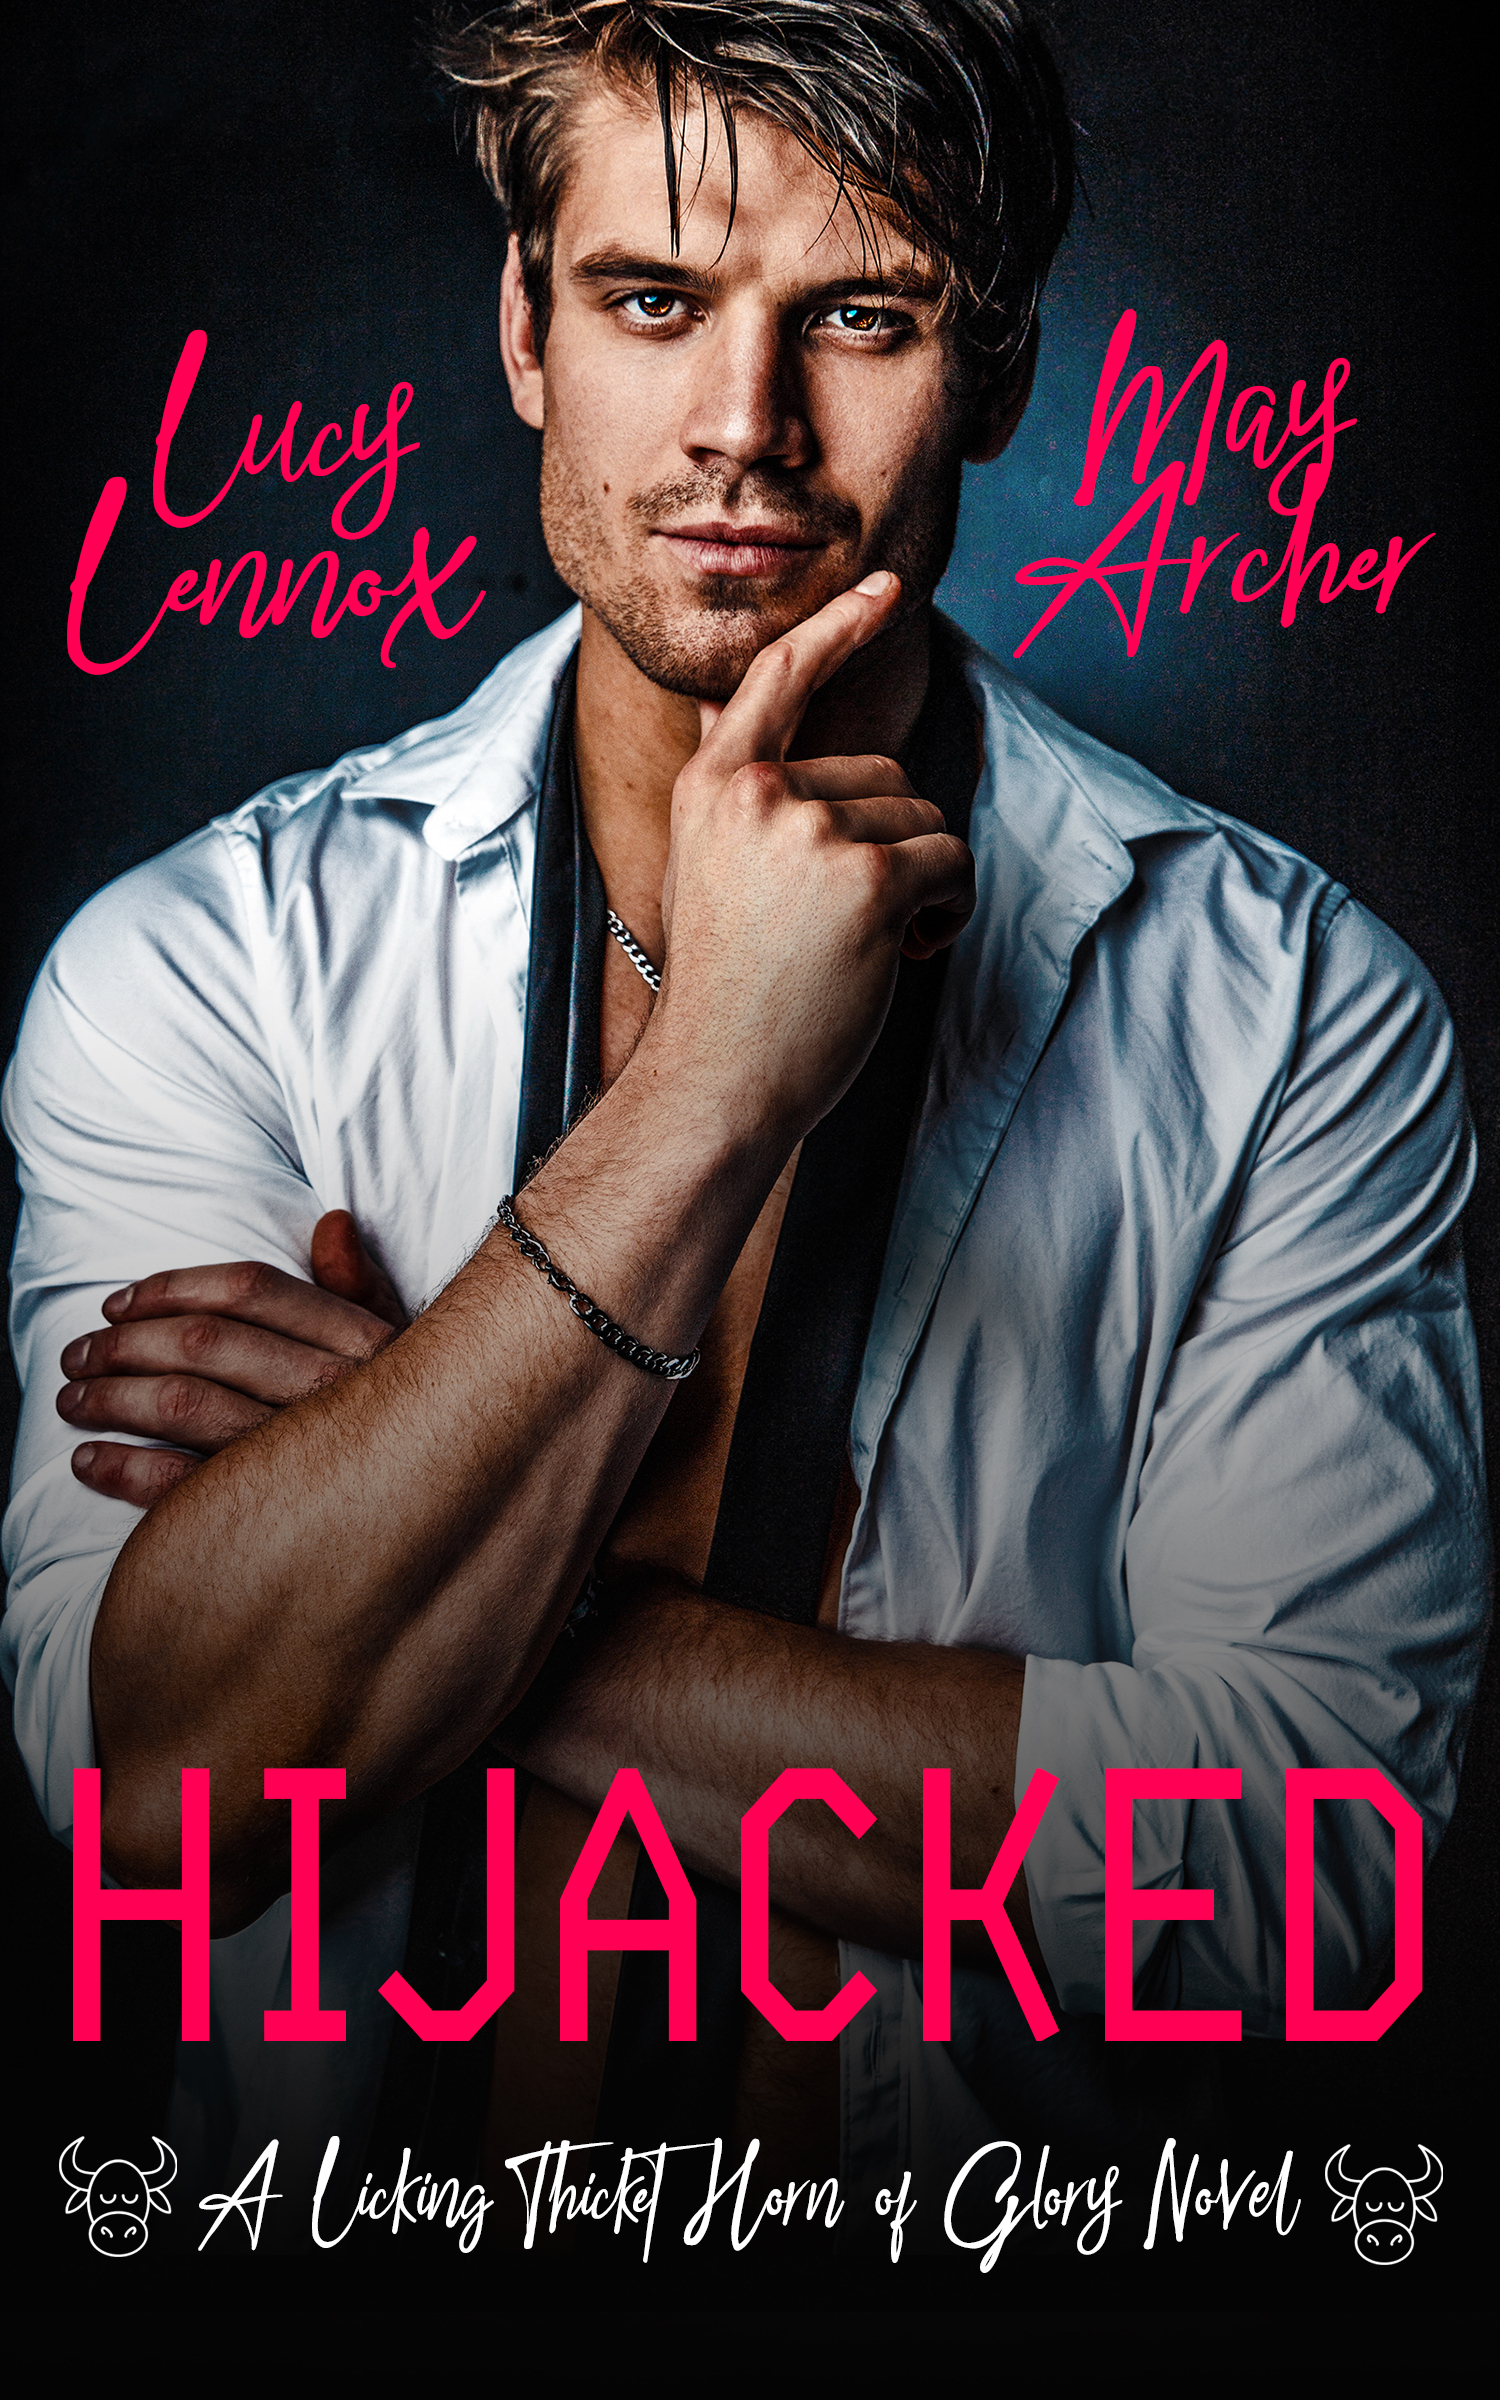 Hijacked by Lucy Lennox and May Archer